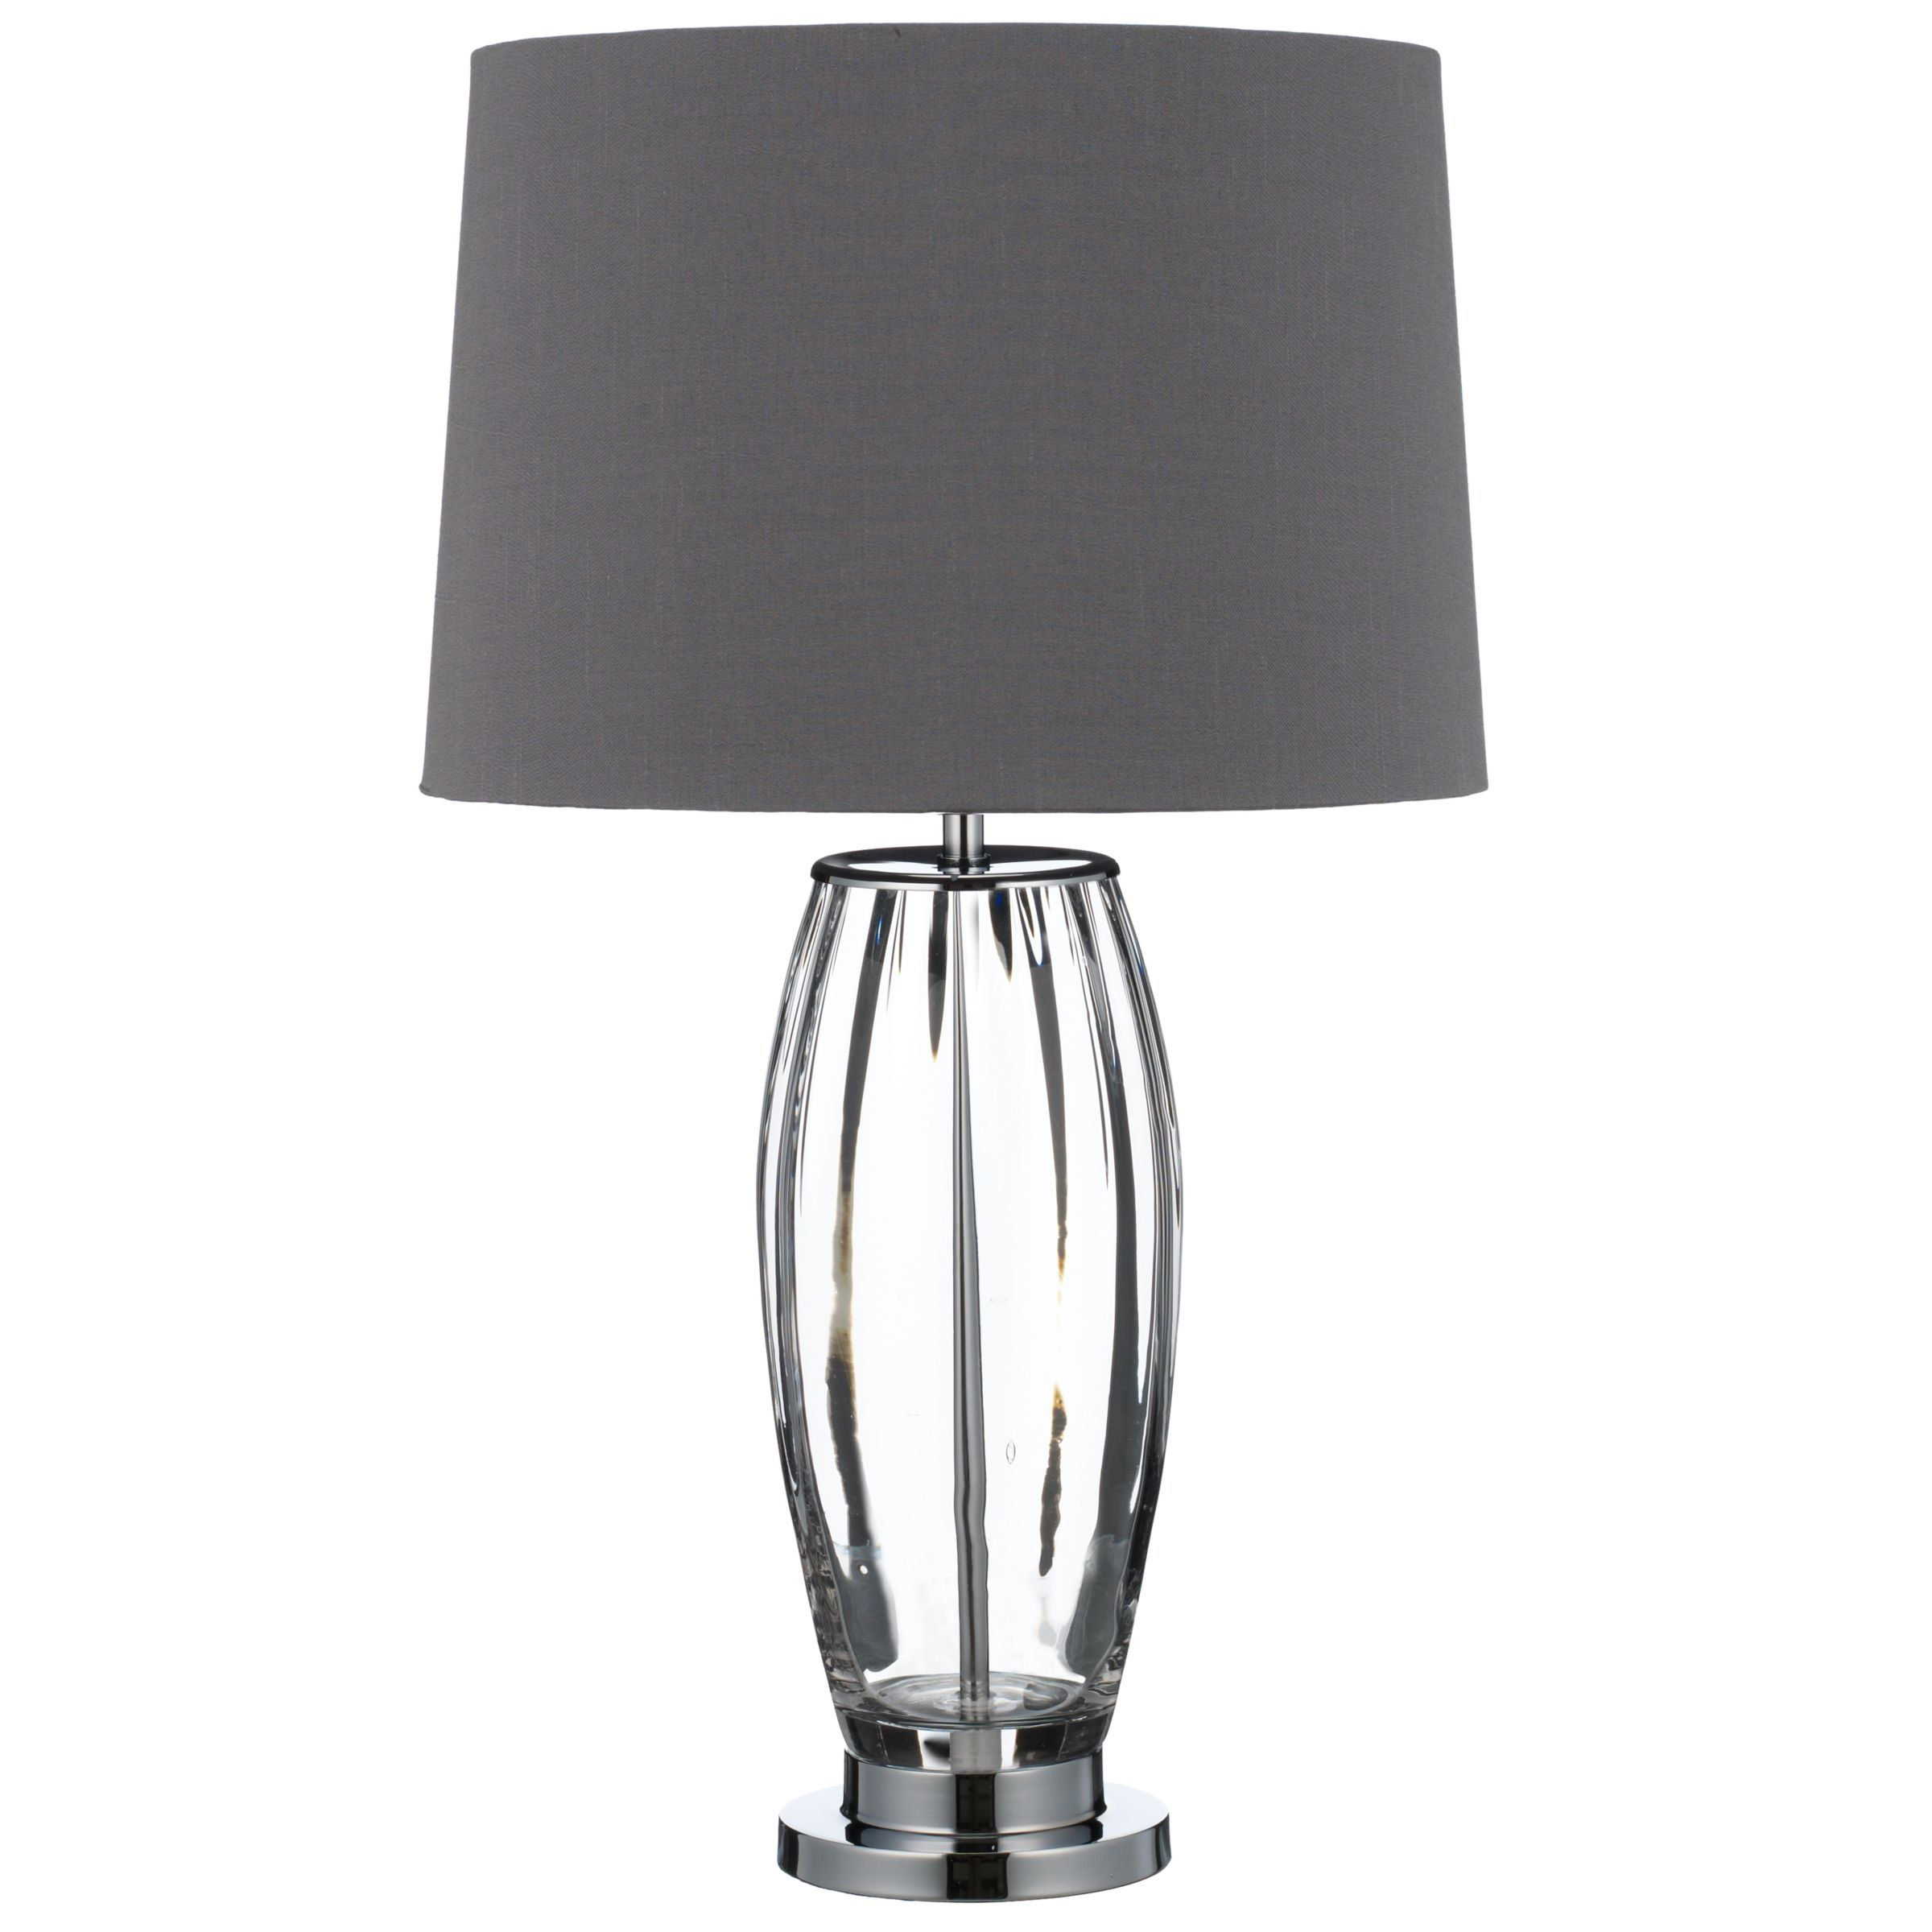 John lewis amelia table lamp review compare prices buy for Table lamp shades john lewis